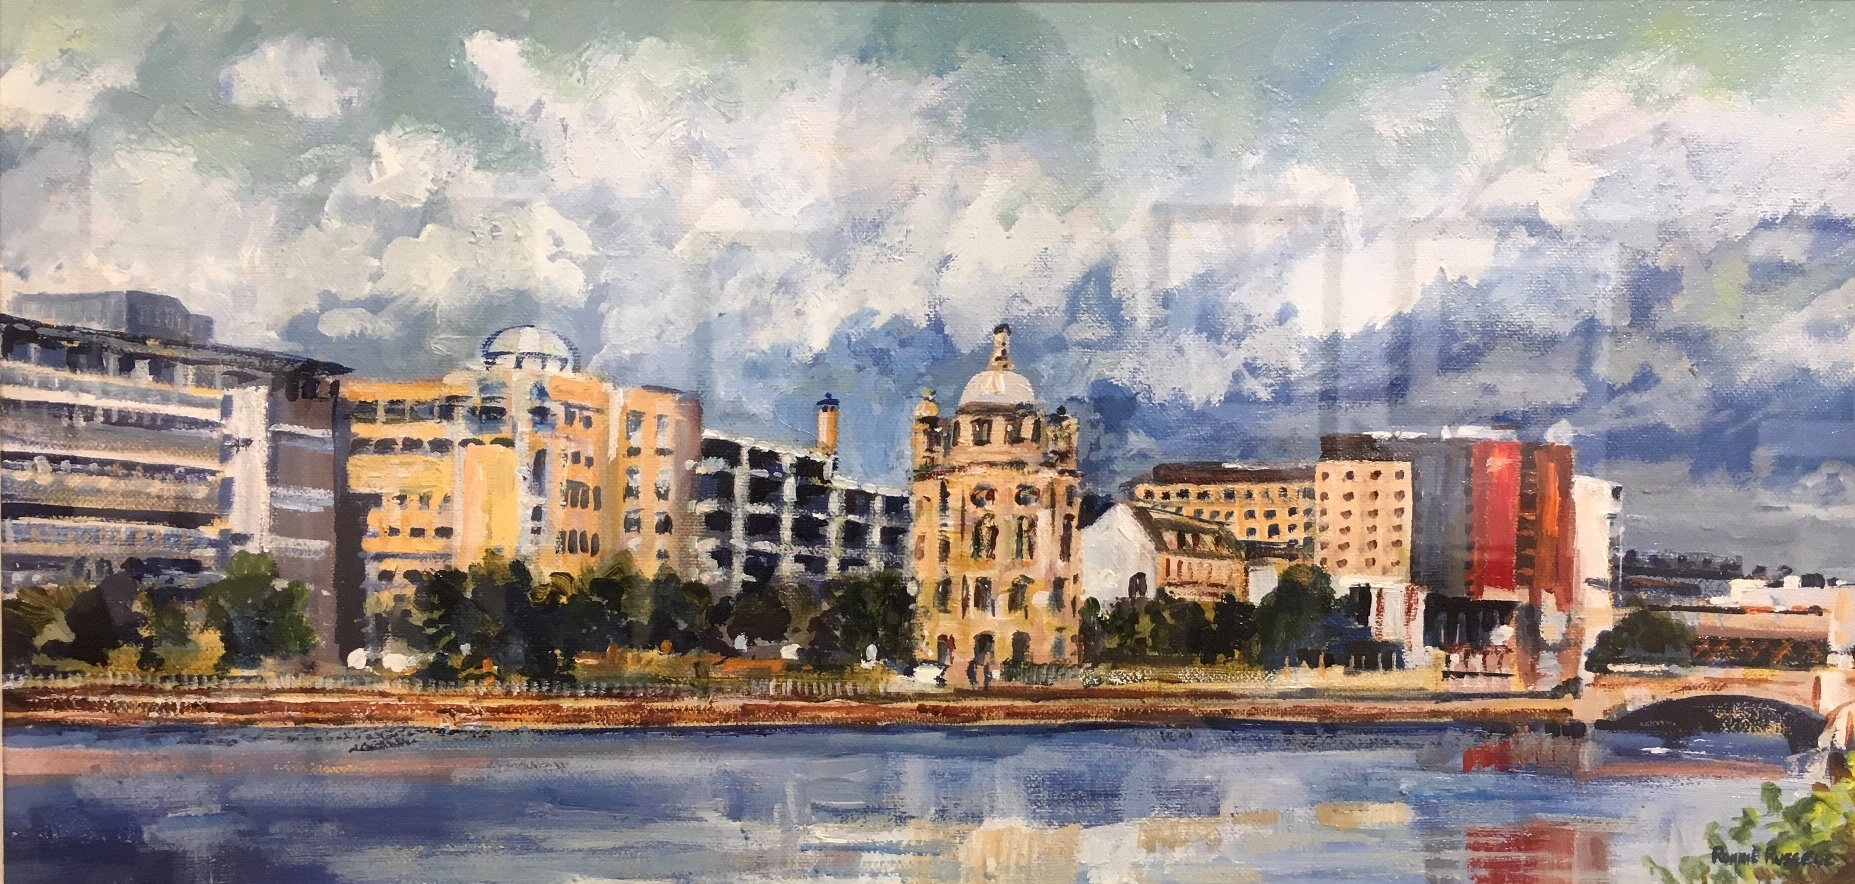 'Glasgow Waterfront' by artist Ronnie Russell